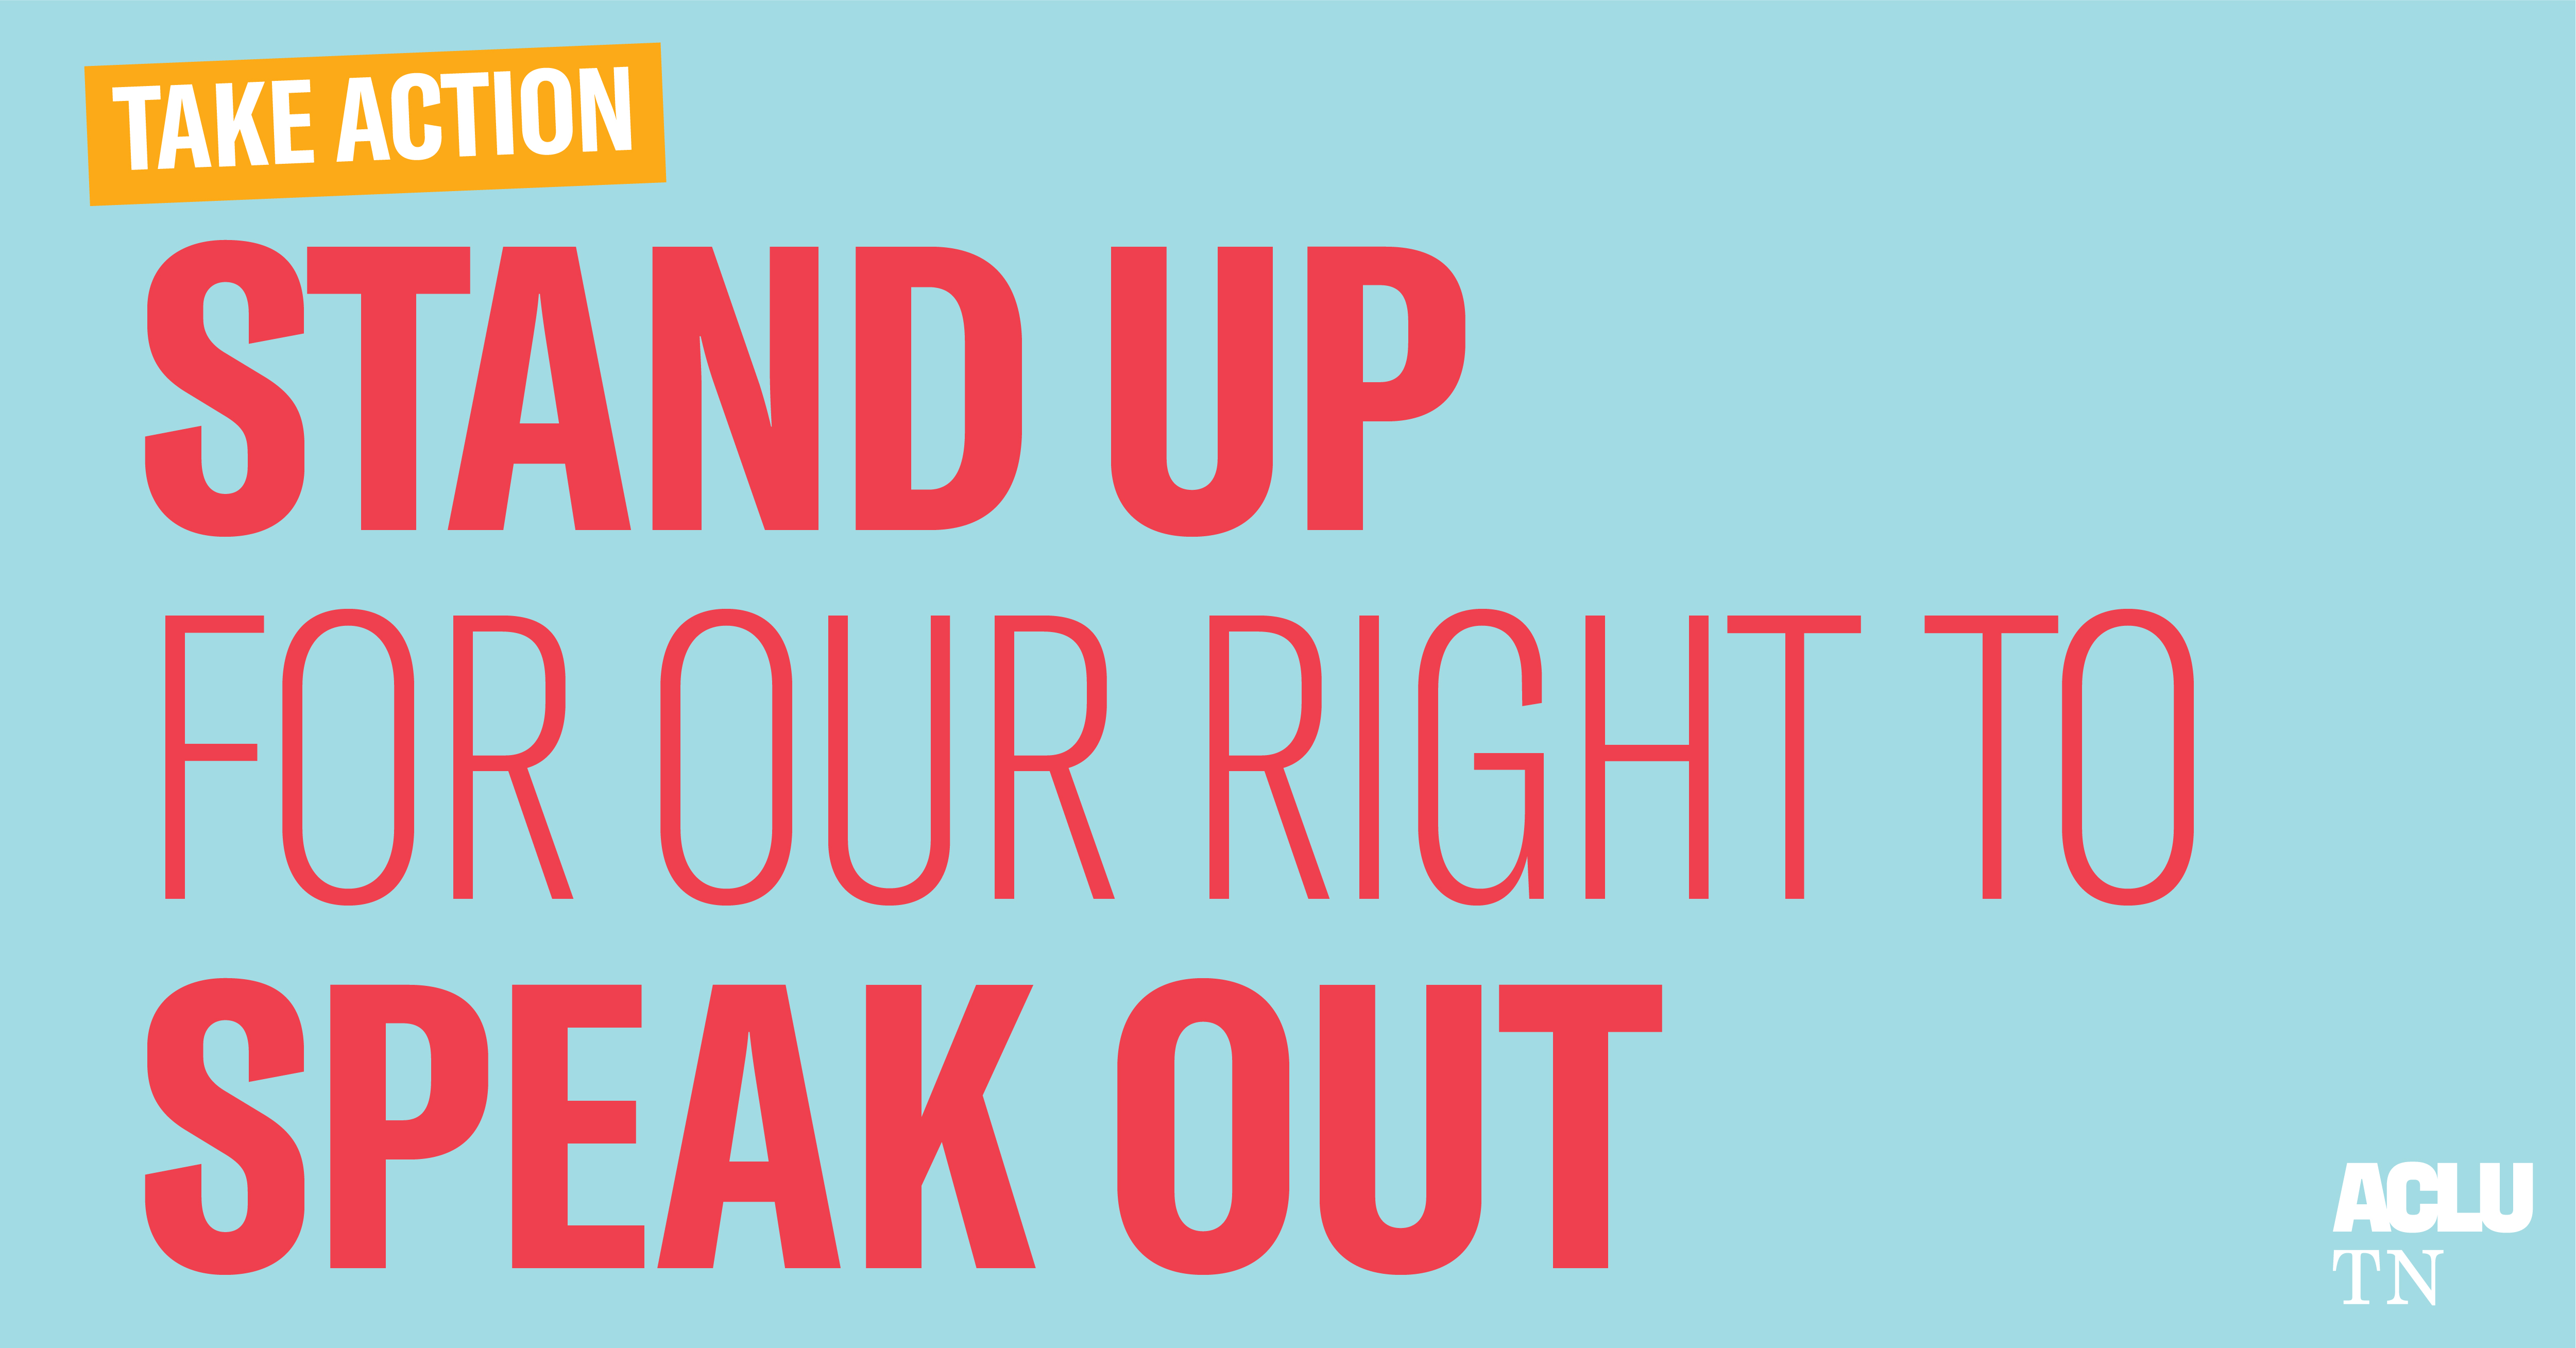 Stand up for the right to speak out